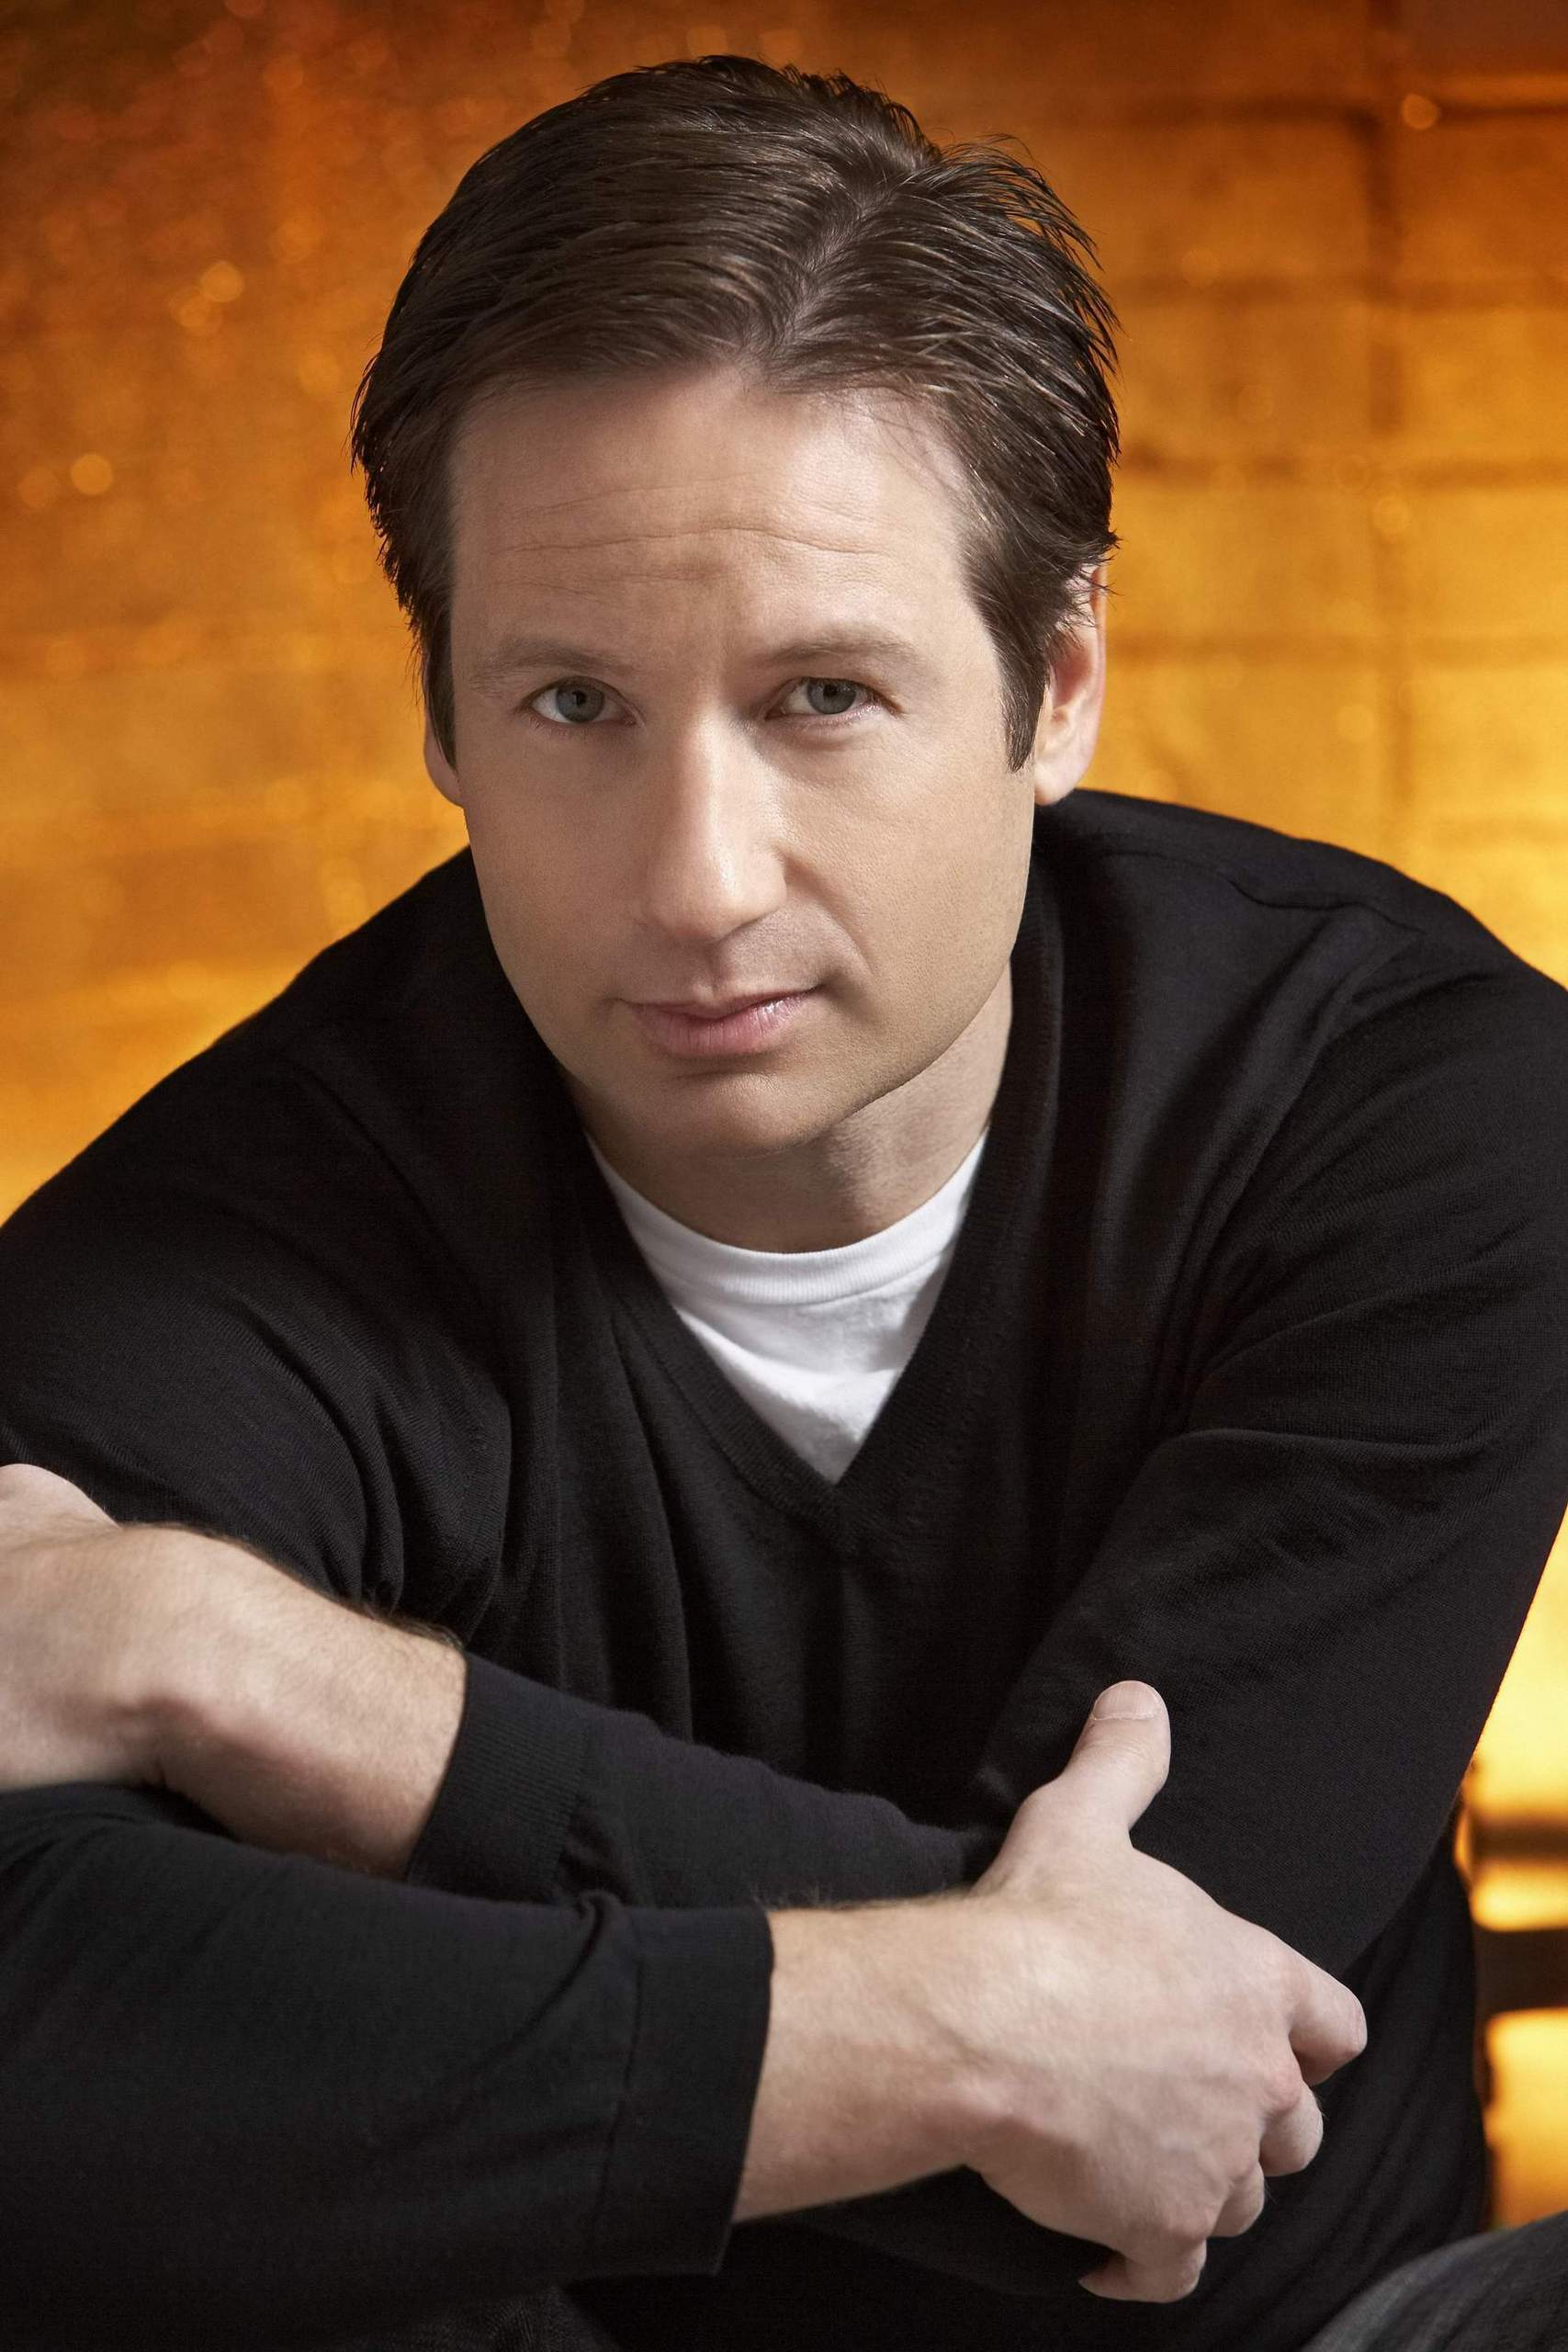 David Duchovny Wallpapers 59 images in Collection Page 1 1707x2560